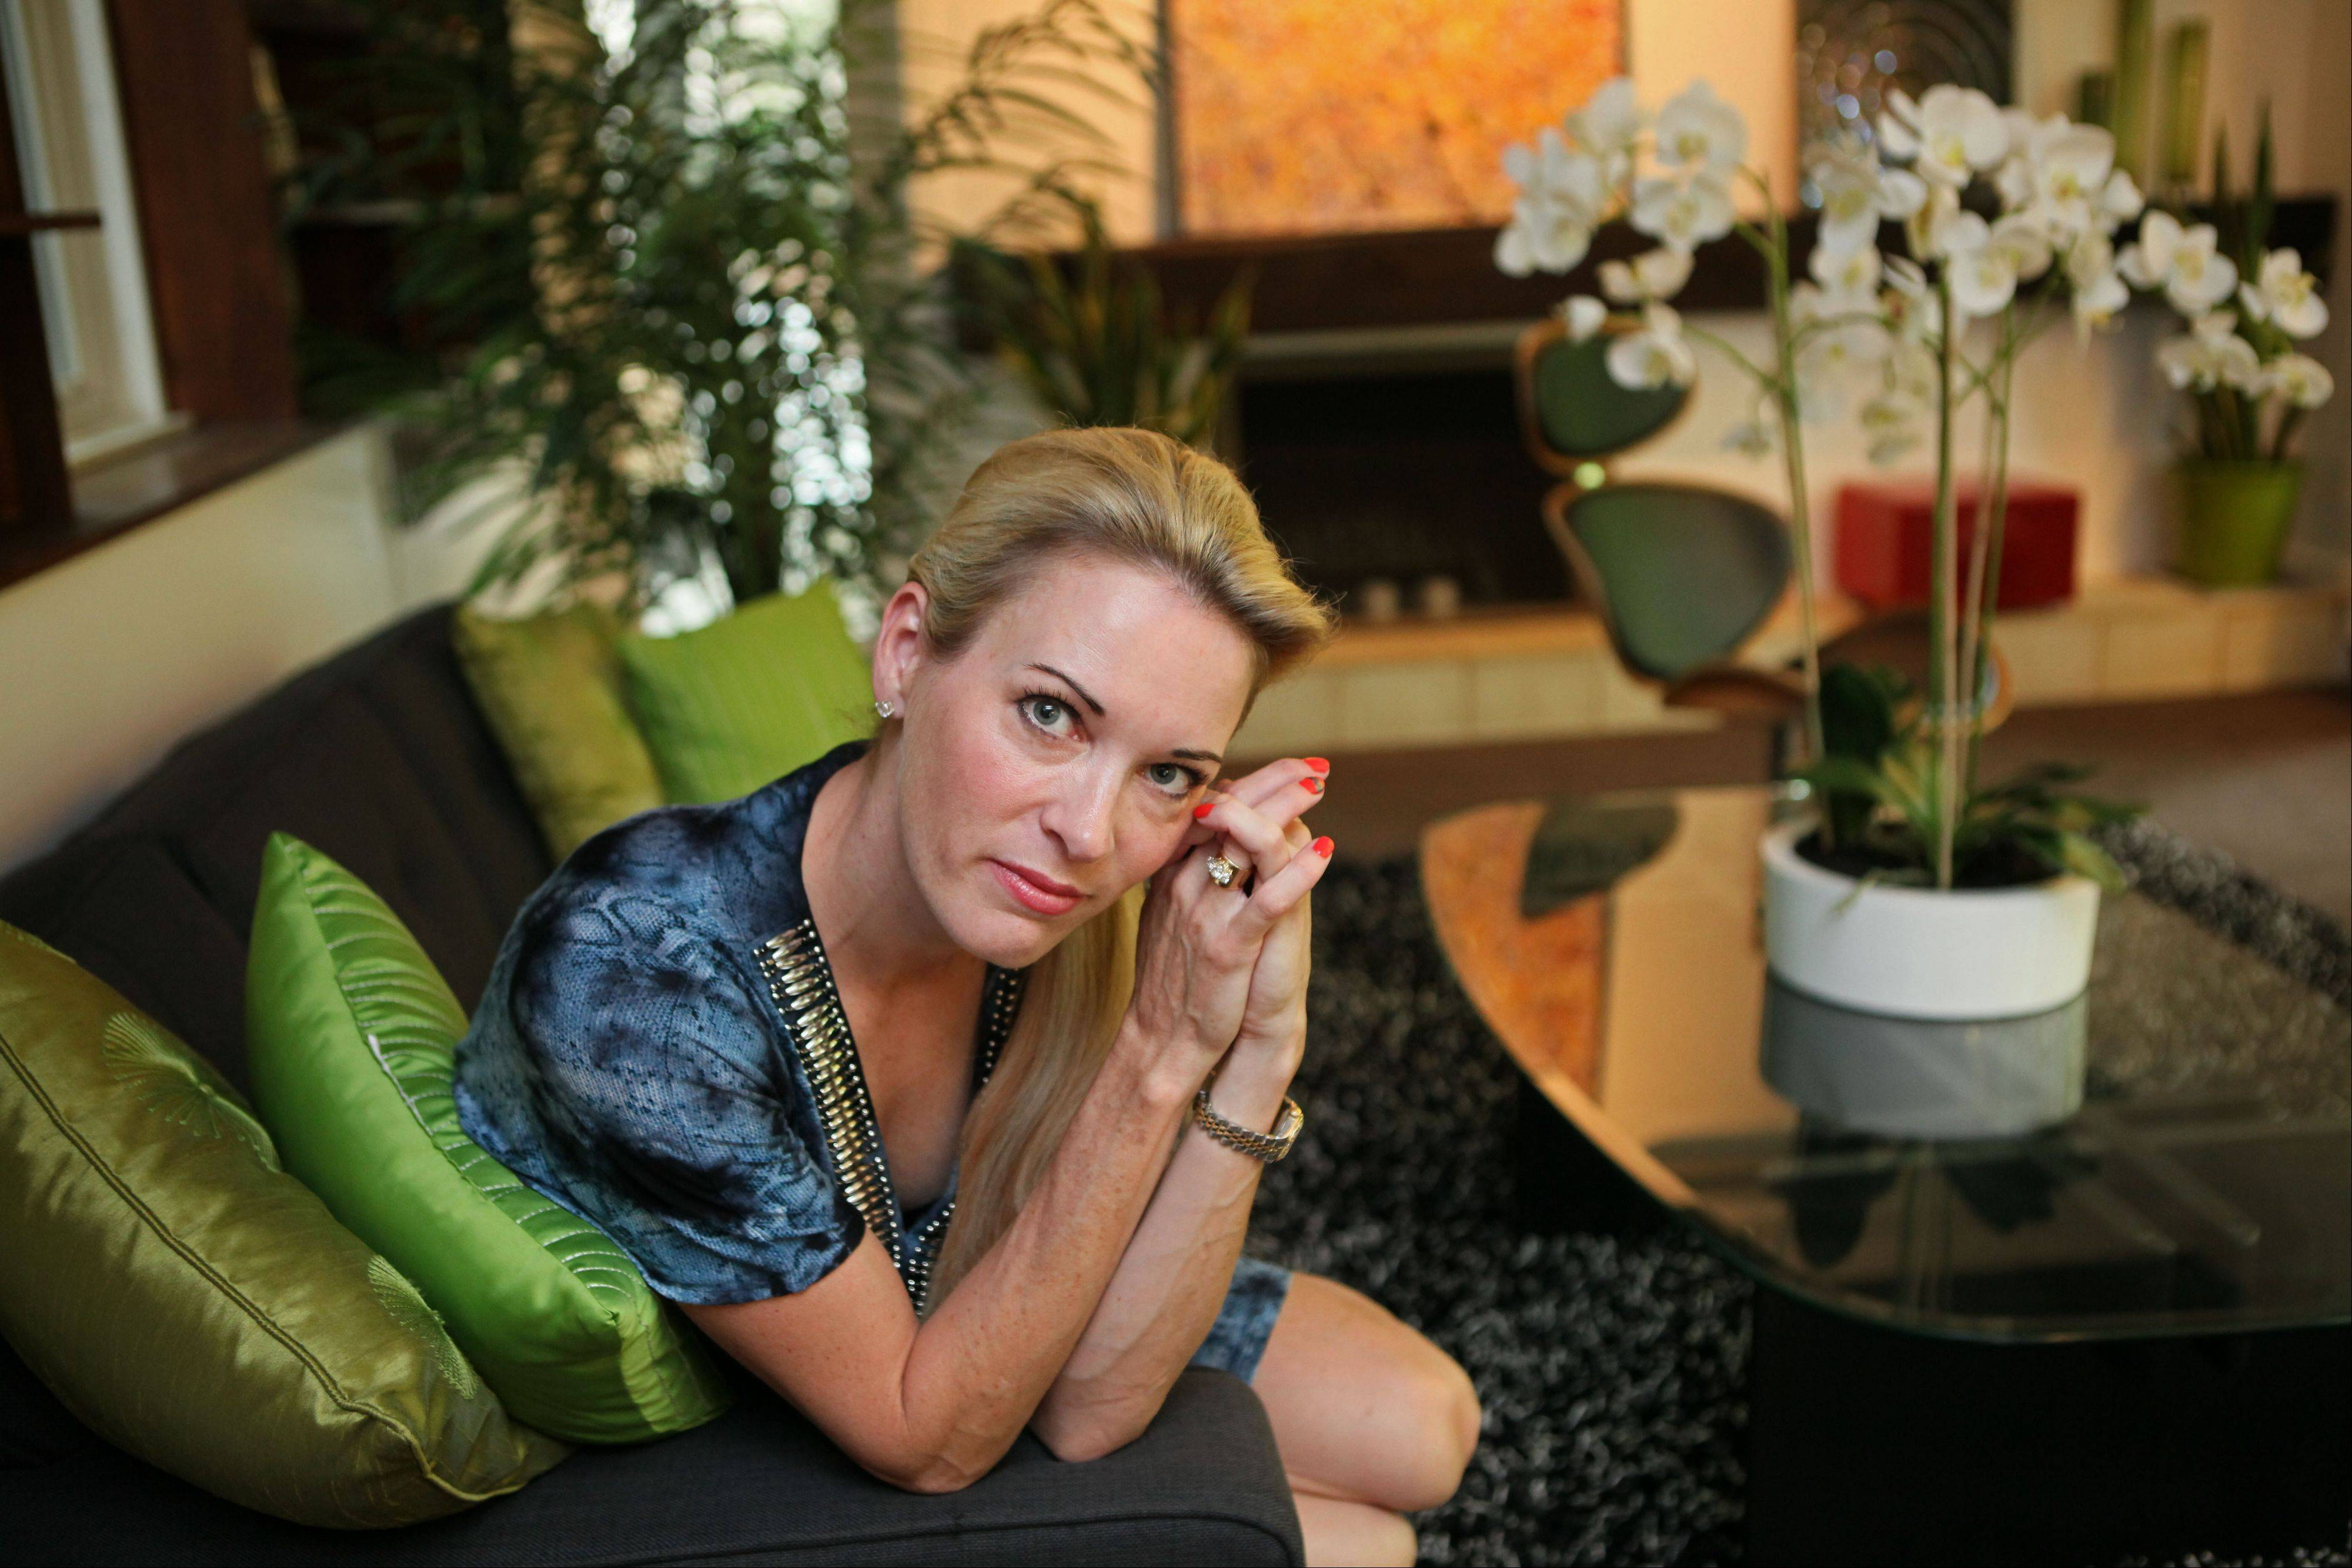 Suzy Favor Hamilton, shown here in her Madison, Wis., home last July, has admitted leading a double life as an escort. The three-time Olympian apologized Thursday after a report said she had been working as a prostitute in Las Vegas.